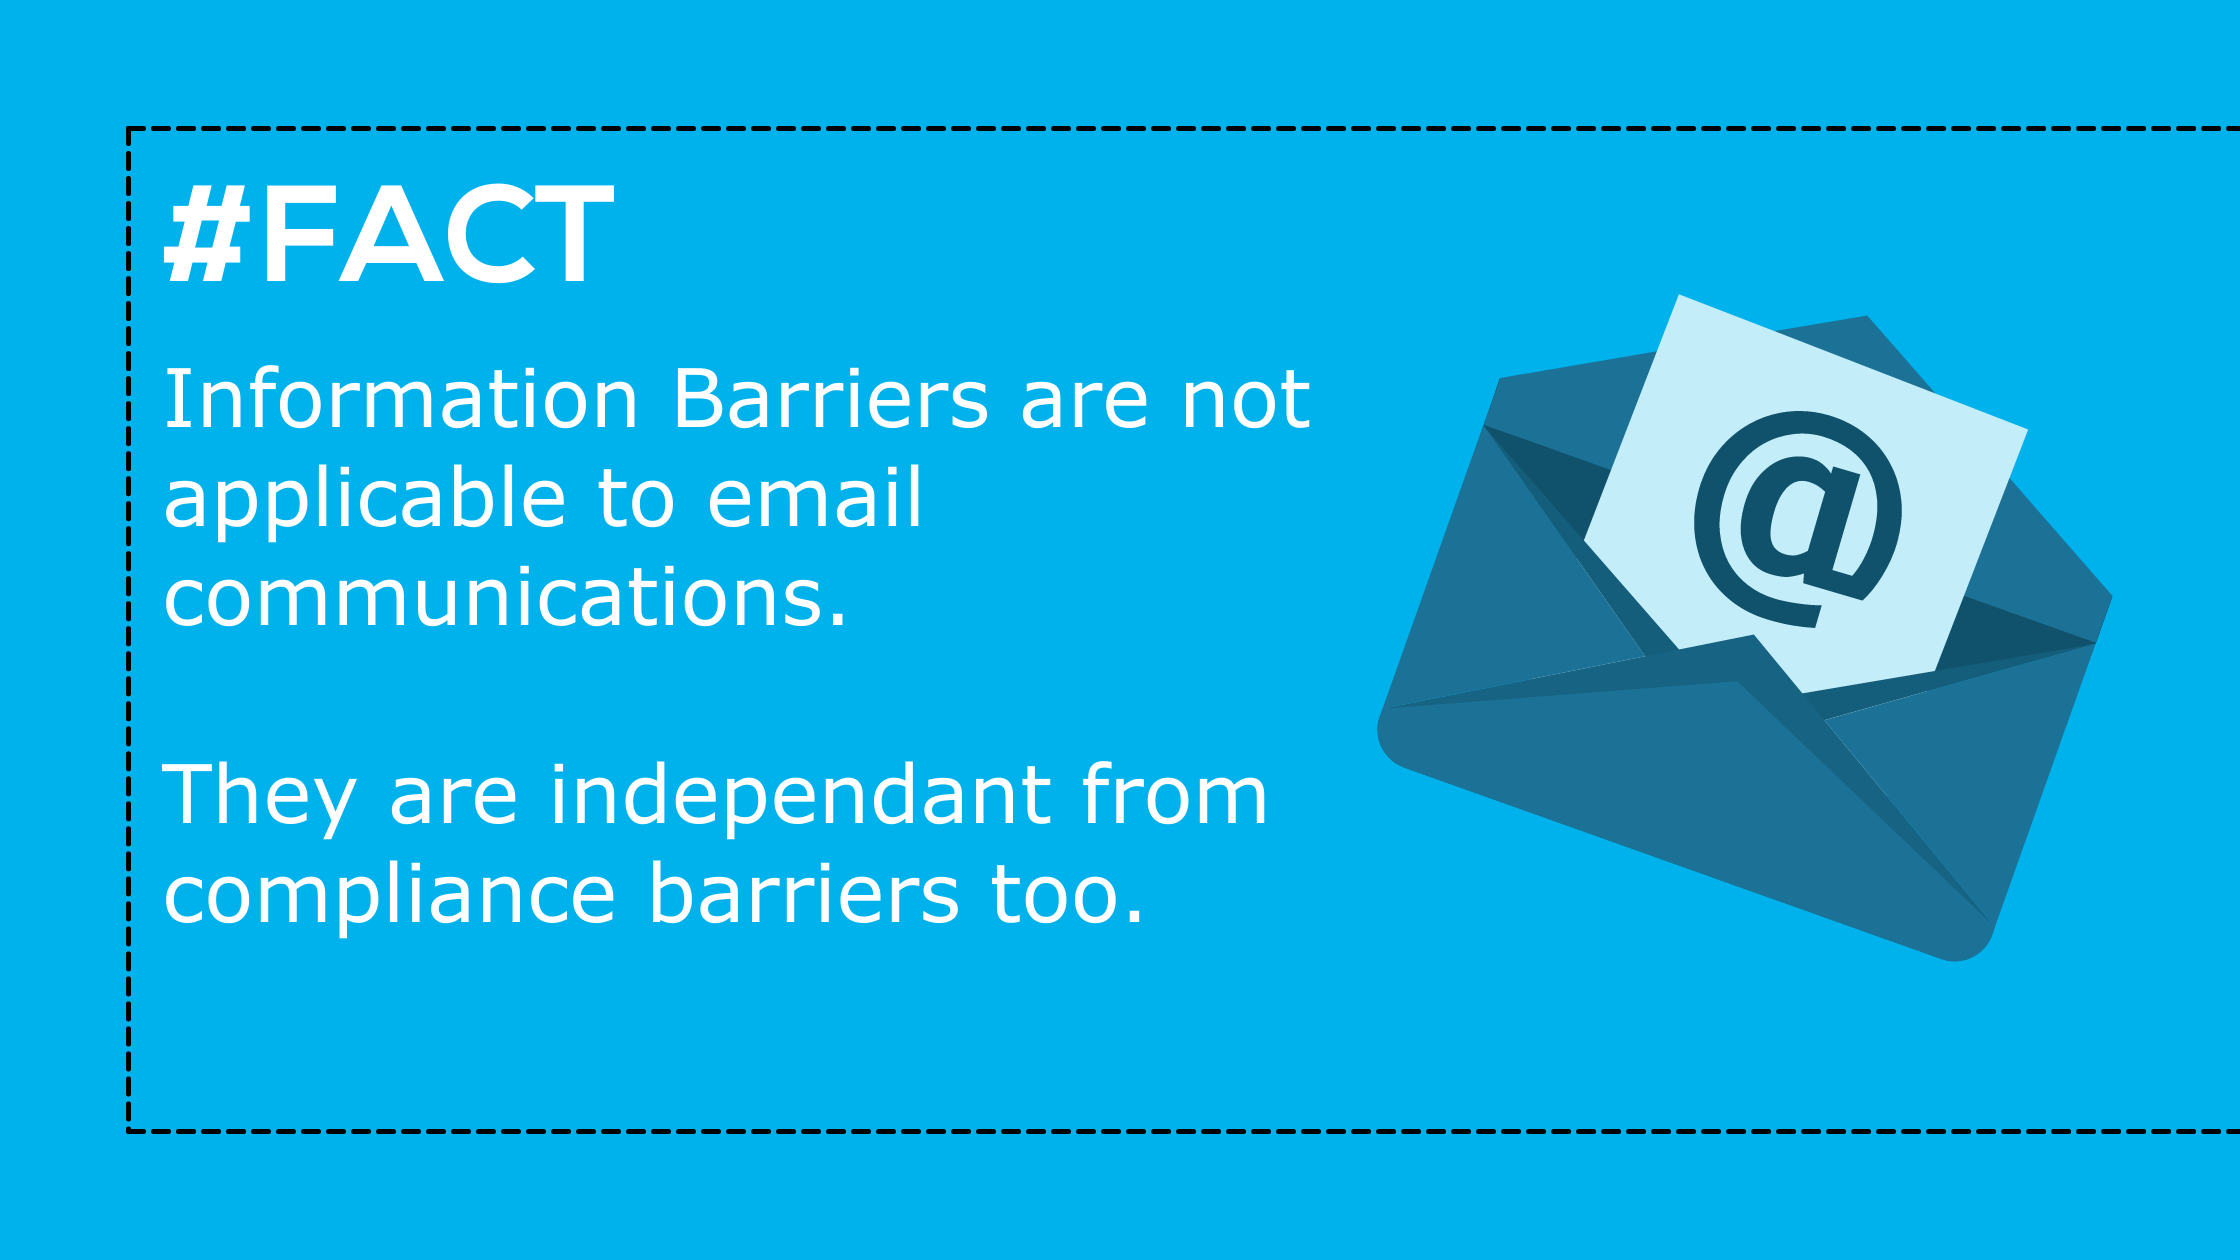 Information Barriers in Microsoft 365 - Fact